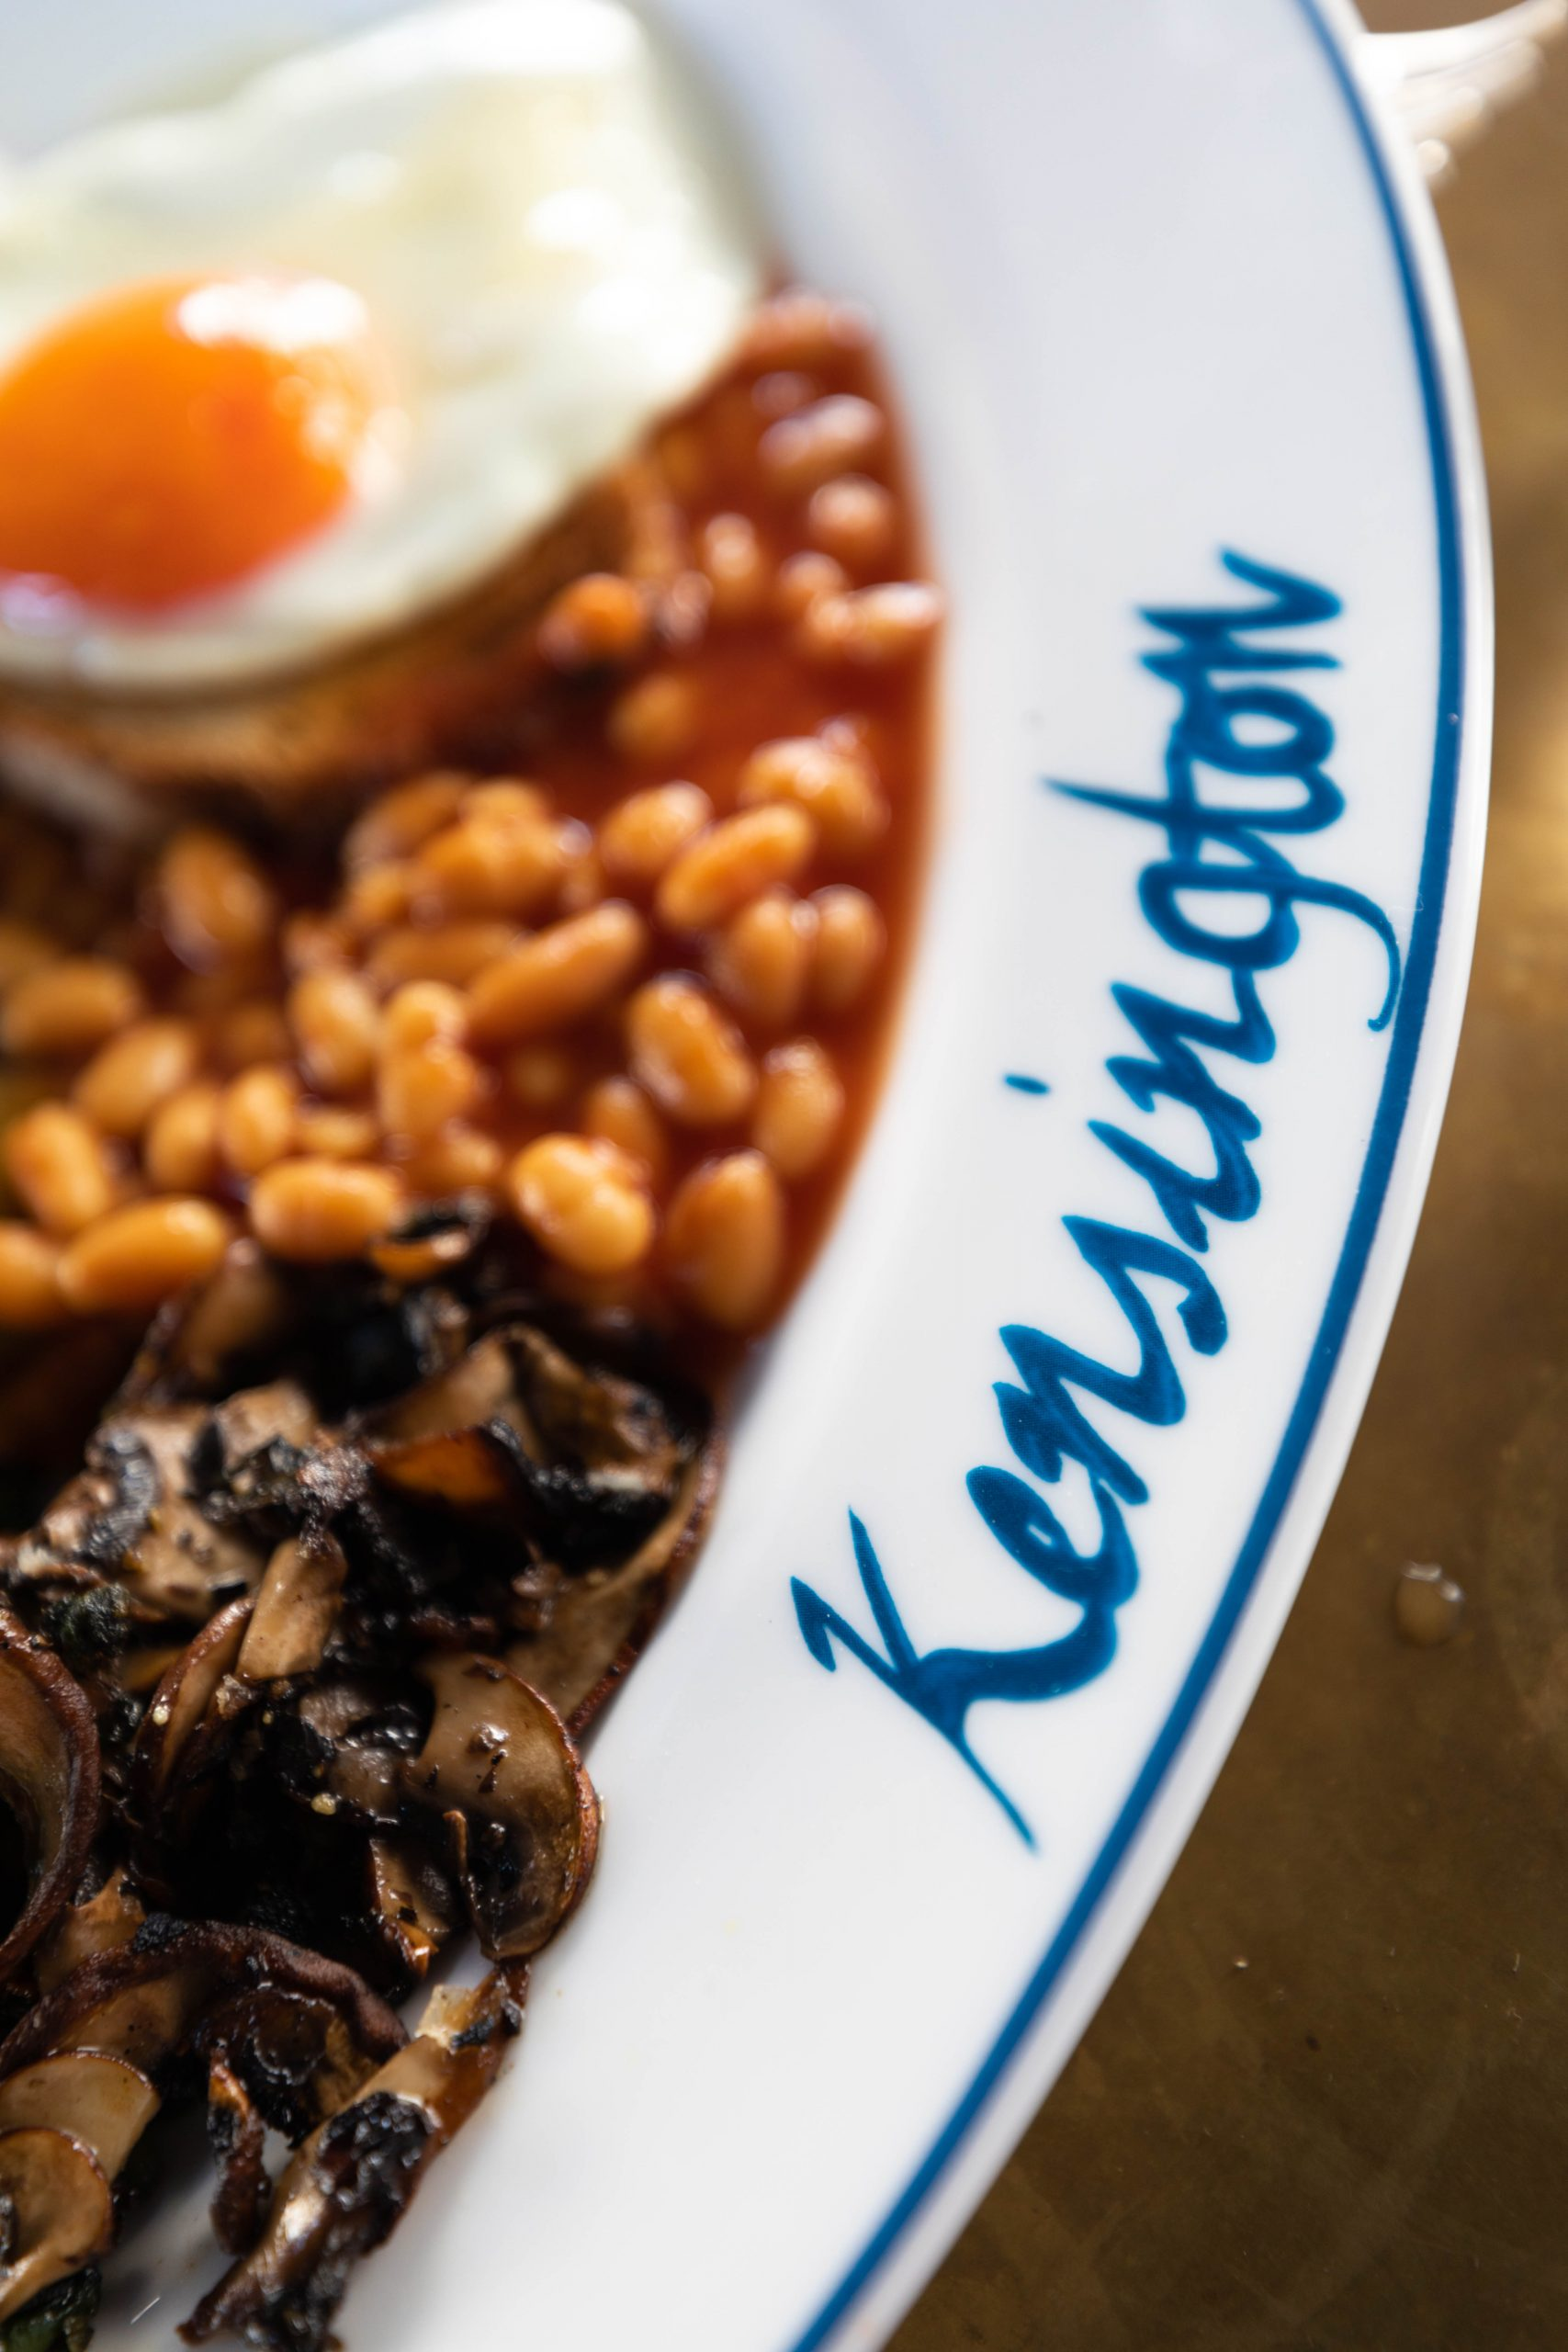 Chuc's Café in South Kensington London, England Full English Breakfast Vegetarian by Annie Fairfax